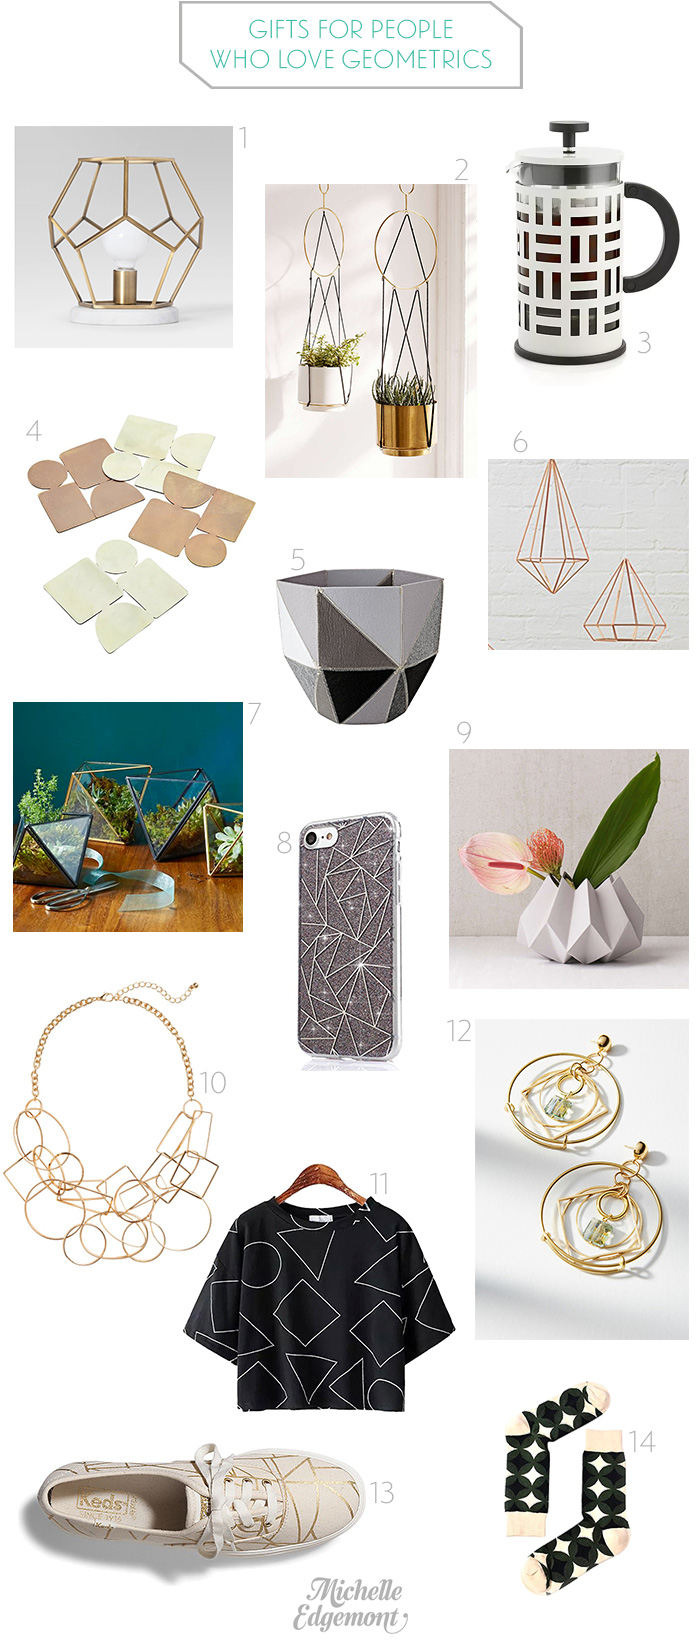 Gifts for people who love geometrics